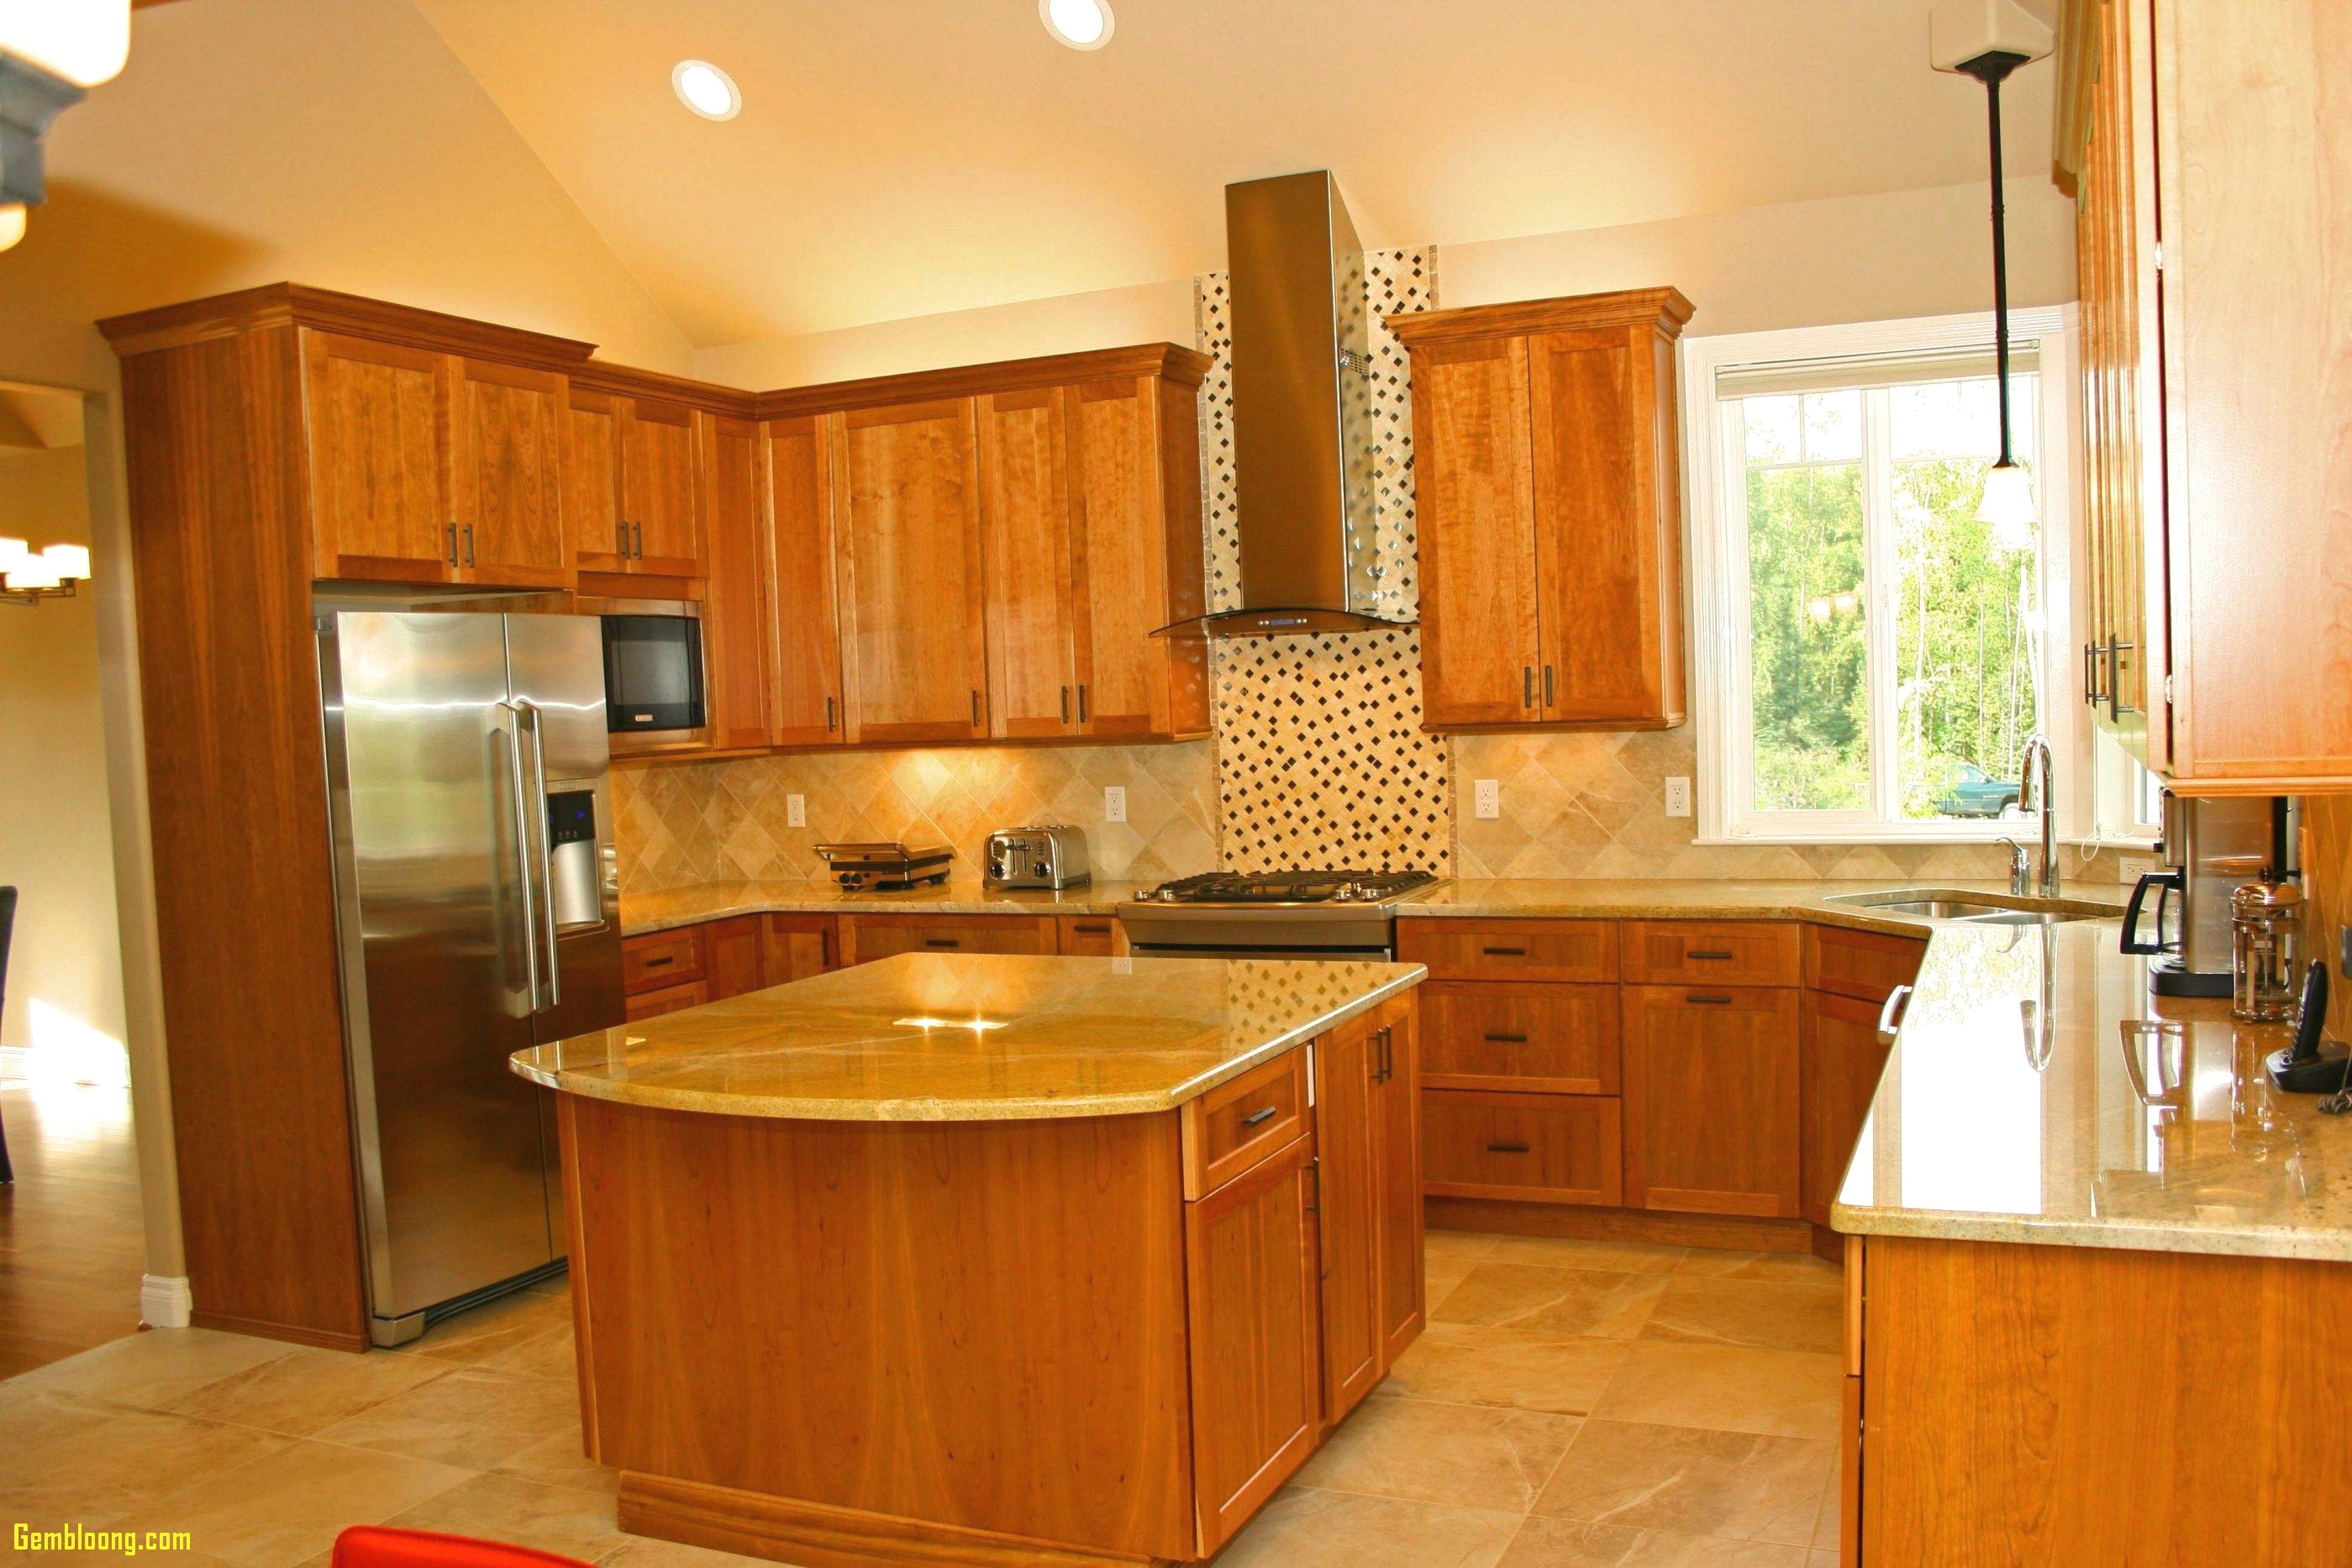 Best ideas about Lowes Kitchen Ideas . Save or Pin Lowes Kitchens Designs – Wow Blog Now.